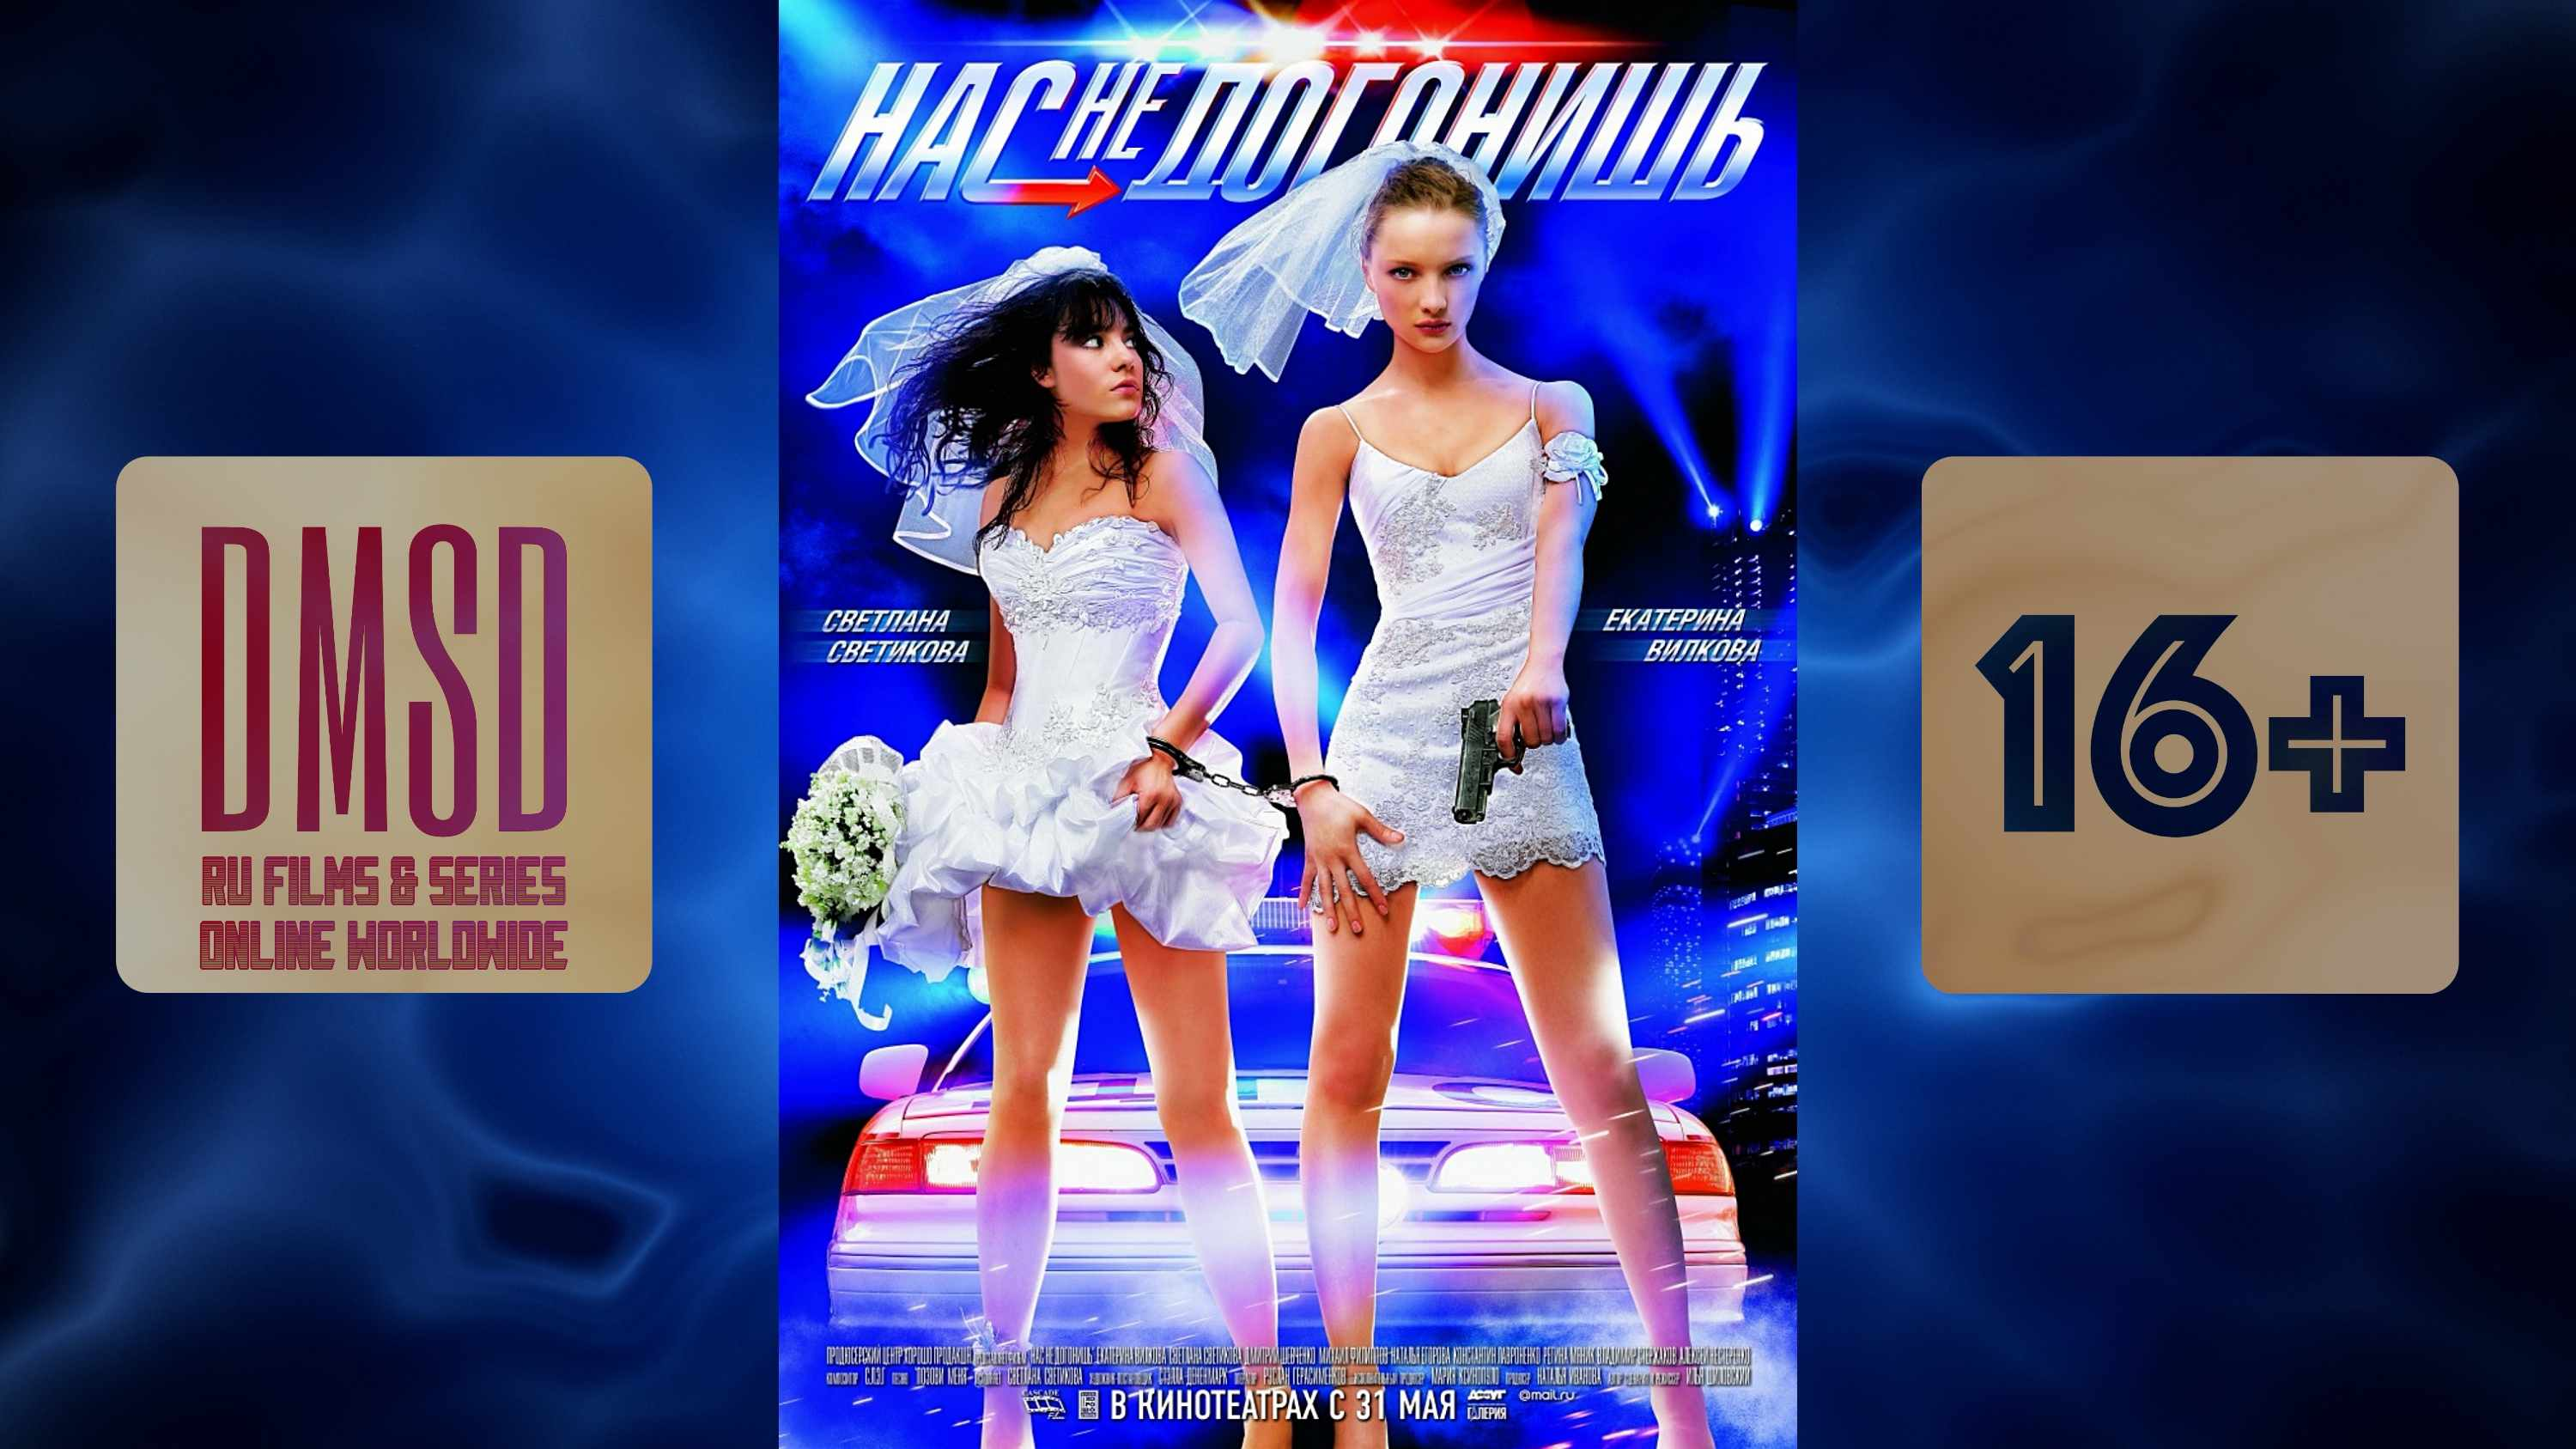 Нас не догонишь_2007_Ru film_DMSD_AppleTV